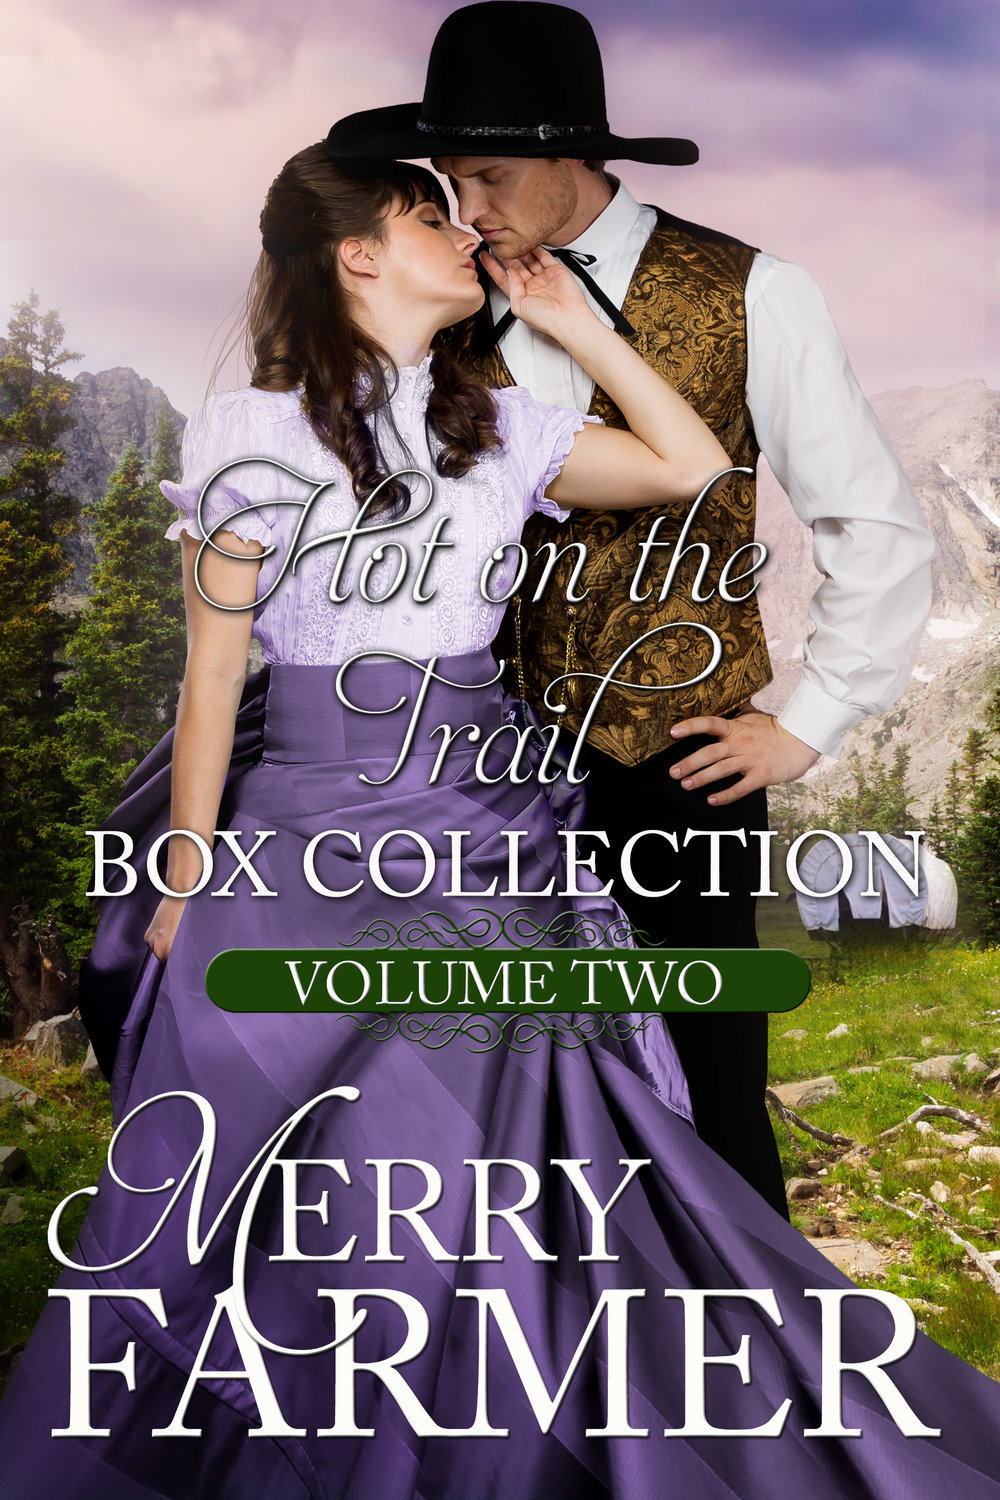 Hot on the Trail: Box Collection (Volume 2) - Books 4 – 6 of the popular Hot on the Trail series are together here for the first time! Gather up your mail-order brides and cowboys and come out to the old west to fall in love on the Oregon Trail… Each book is a stand-alone that can be read without having read the others.Box Collection includes:Trail of DreamsTrail of DestinyTrail of RedemptionPLEASE BE ADVISED: Steam Level – Very Hot